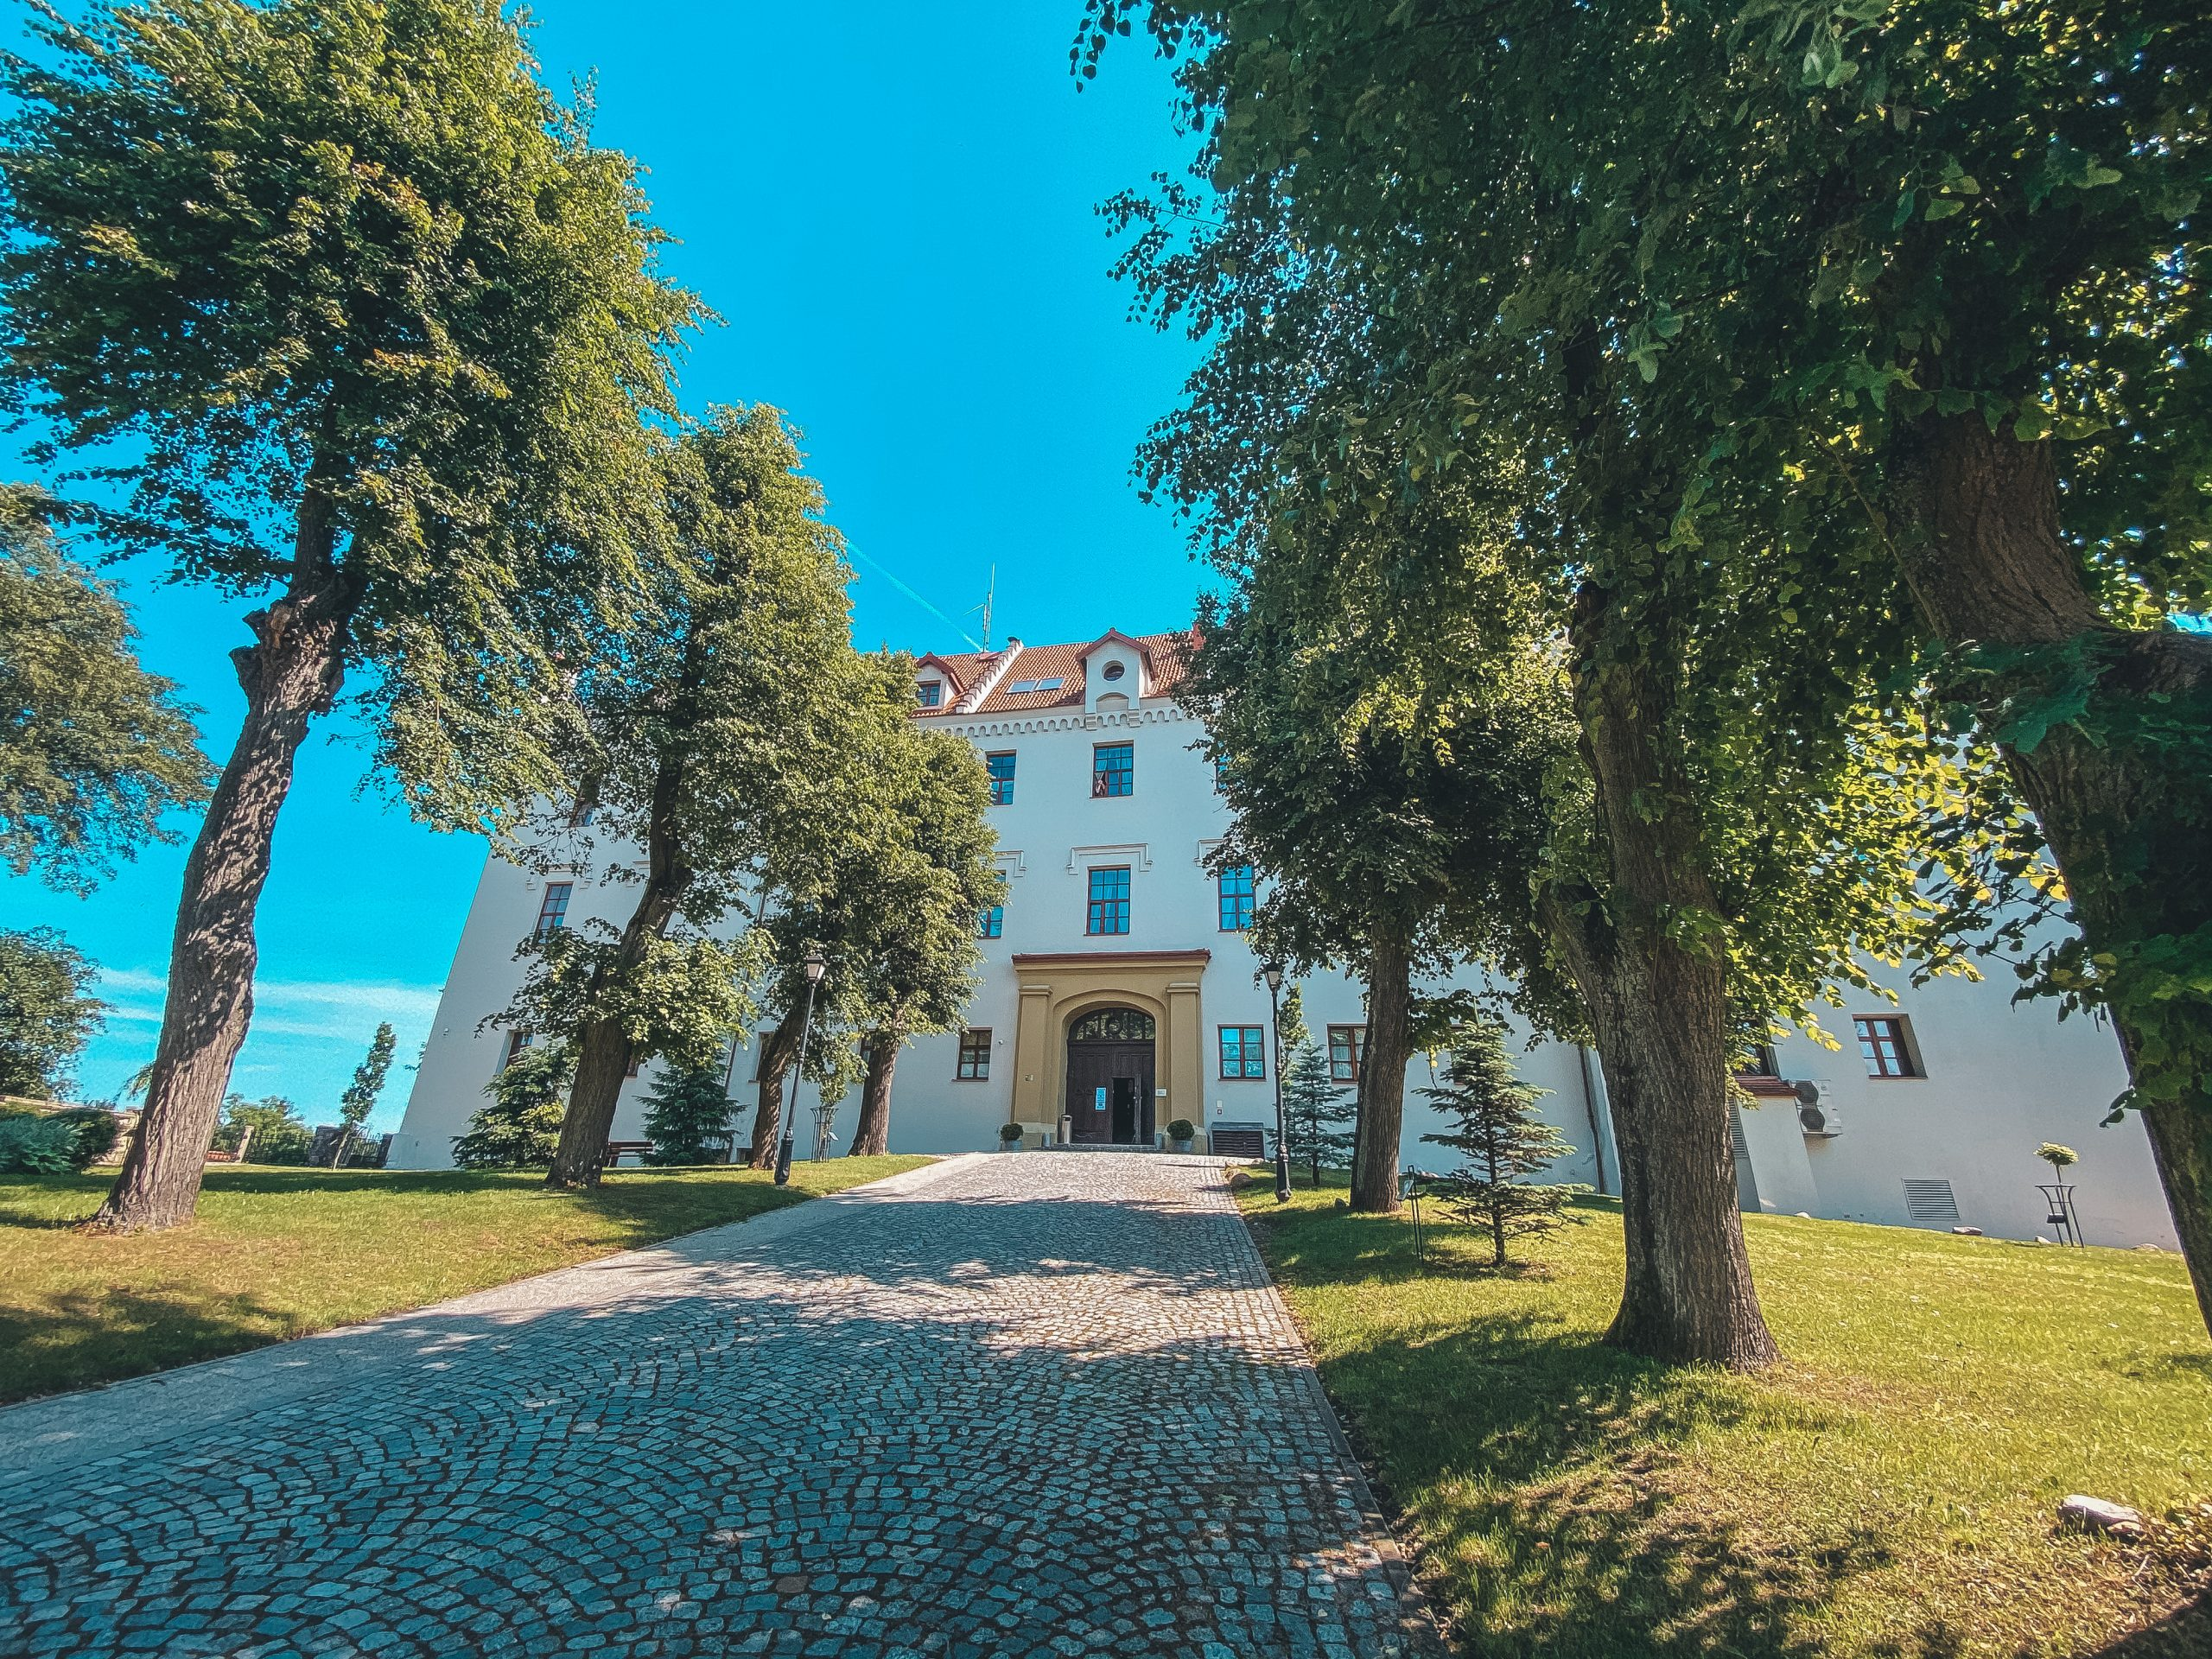 @milenacorleoneofficial's cover photo for '7 Reasons to visit Hotel Zamek Ryn (Castle) - Ship Me There'